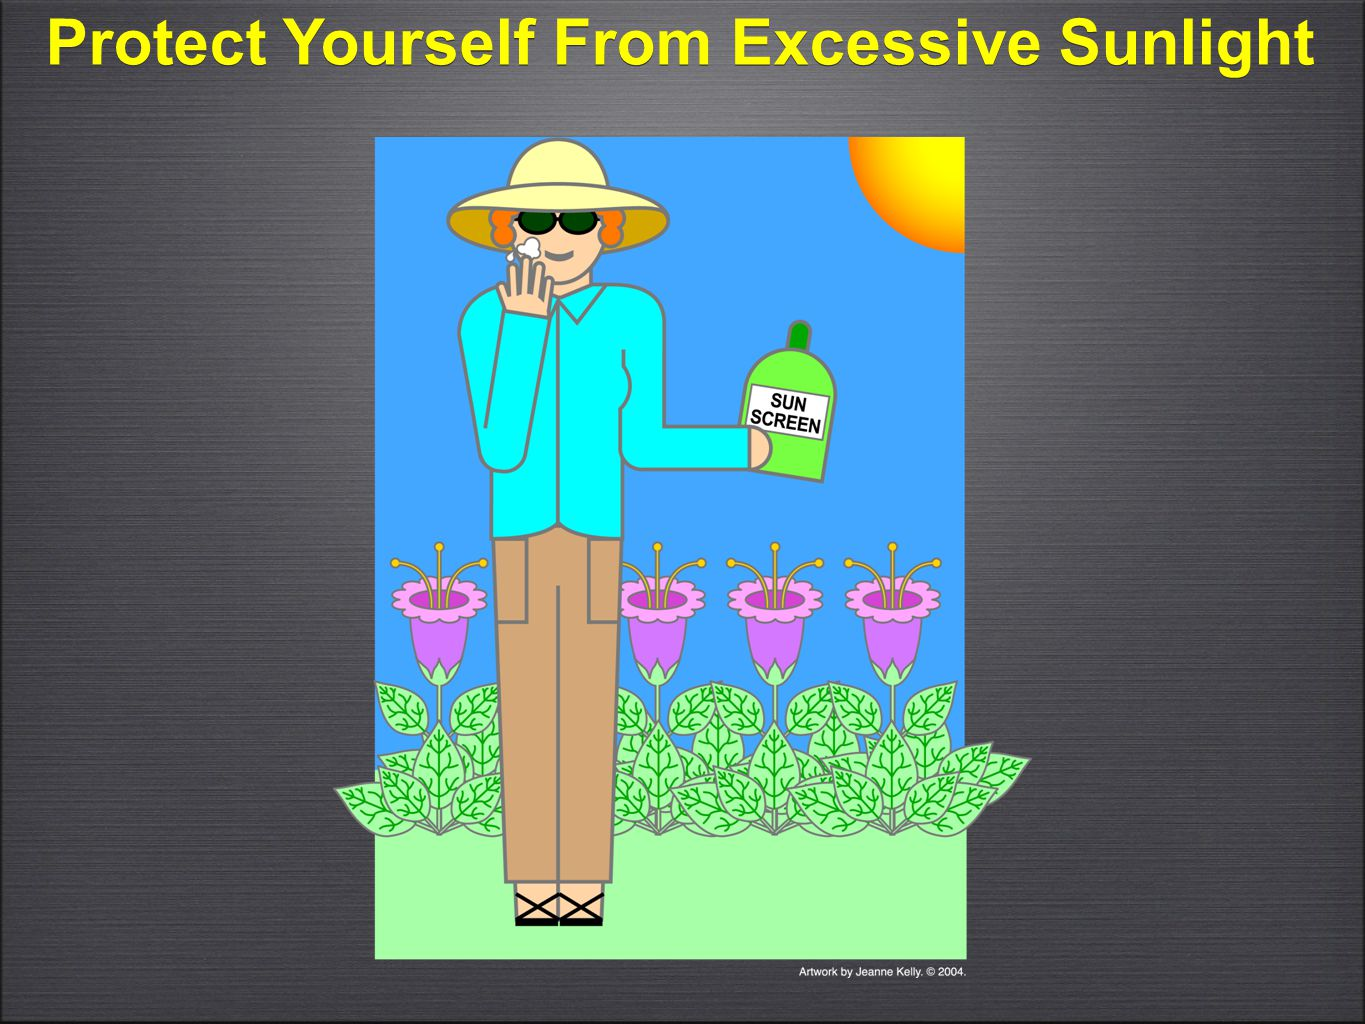 Protect Yourself From Excessive Sunlight